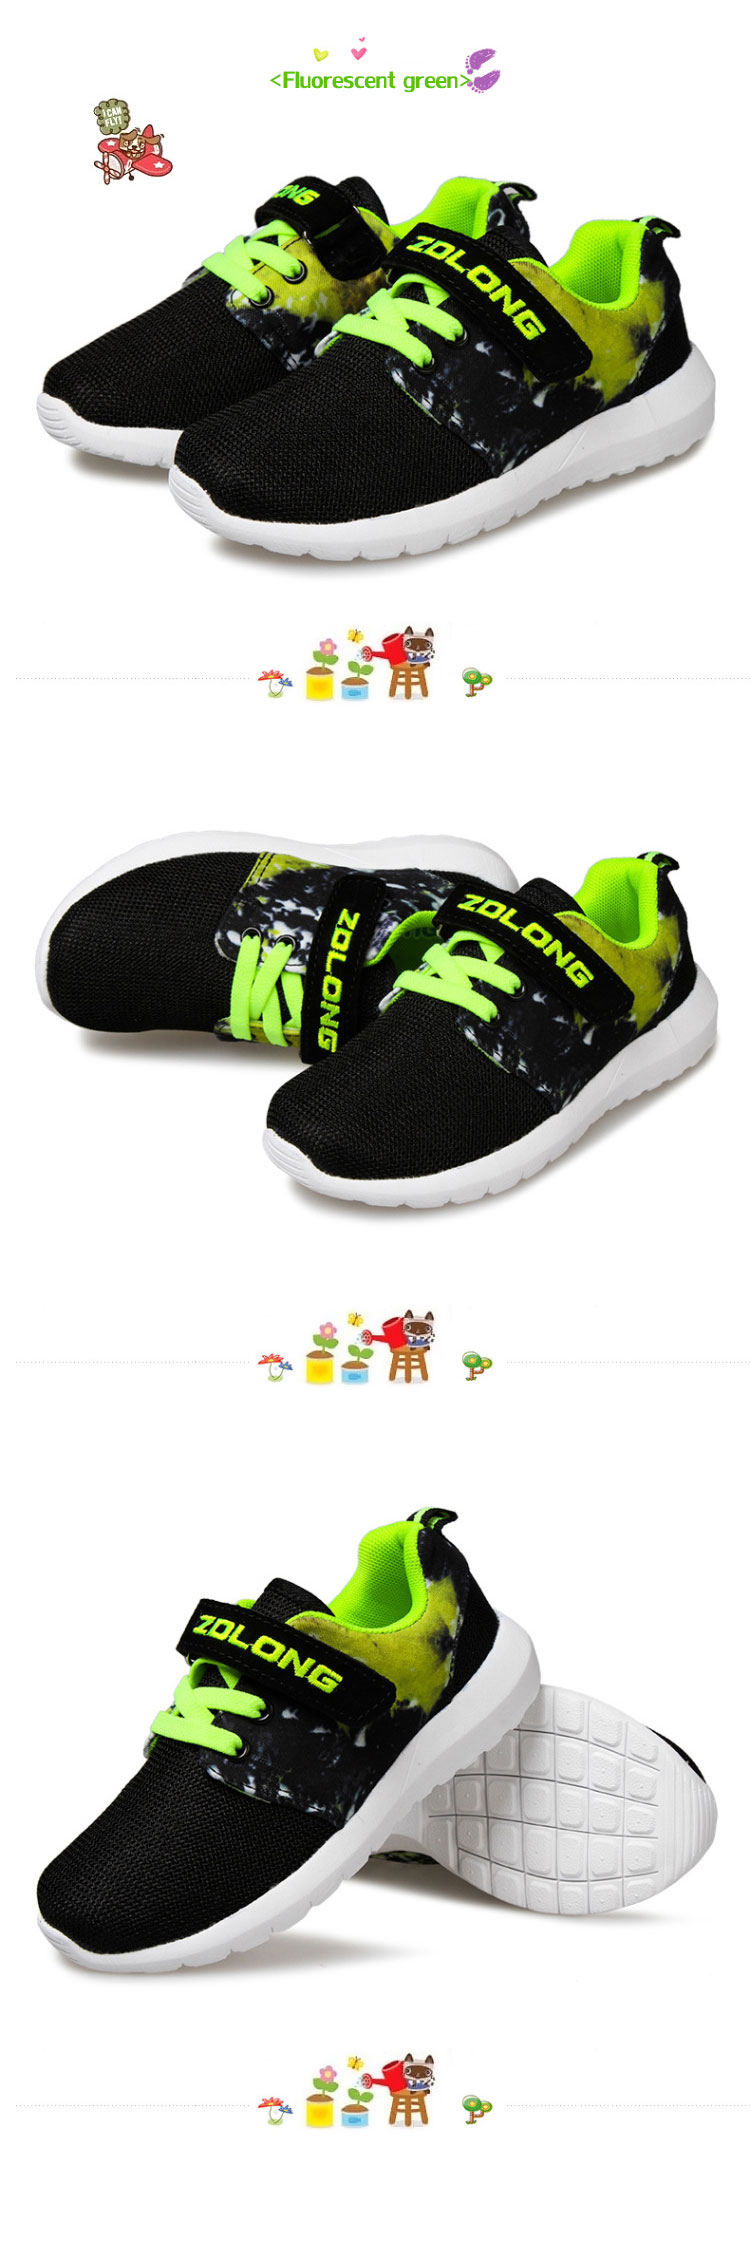 2016 Children Running Shoes Boys Grils Sneakers Athletic Shoe Kids Casual Breathable Board Footwear